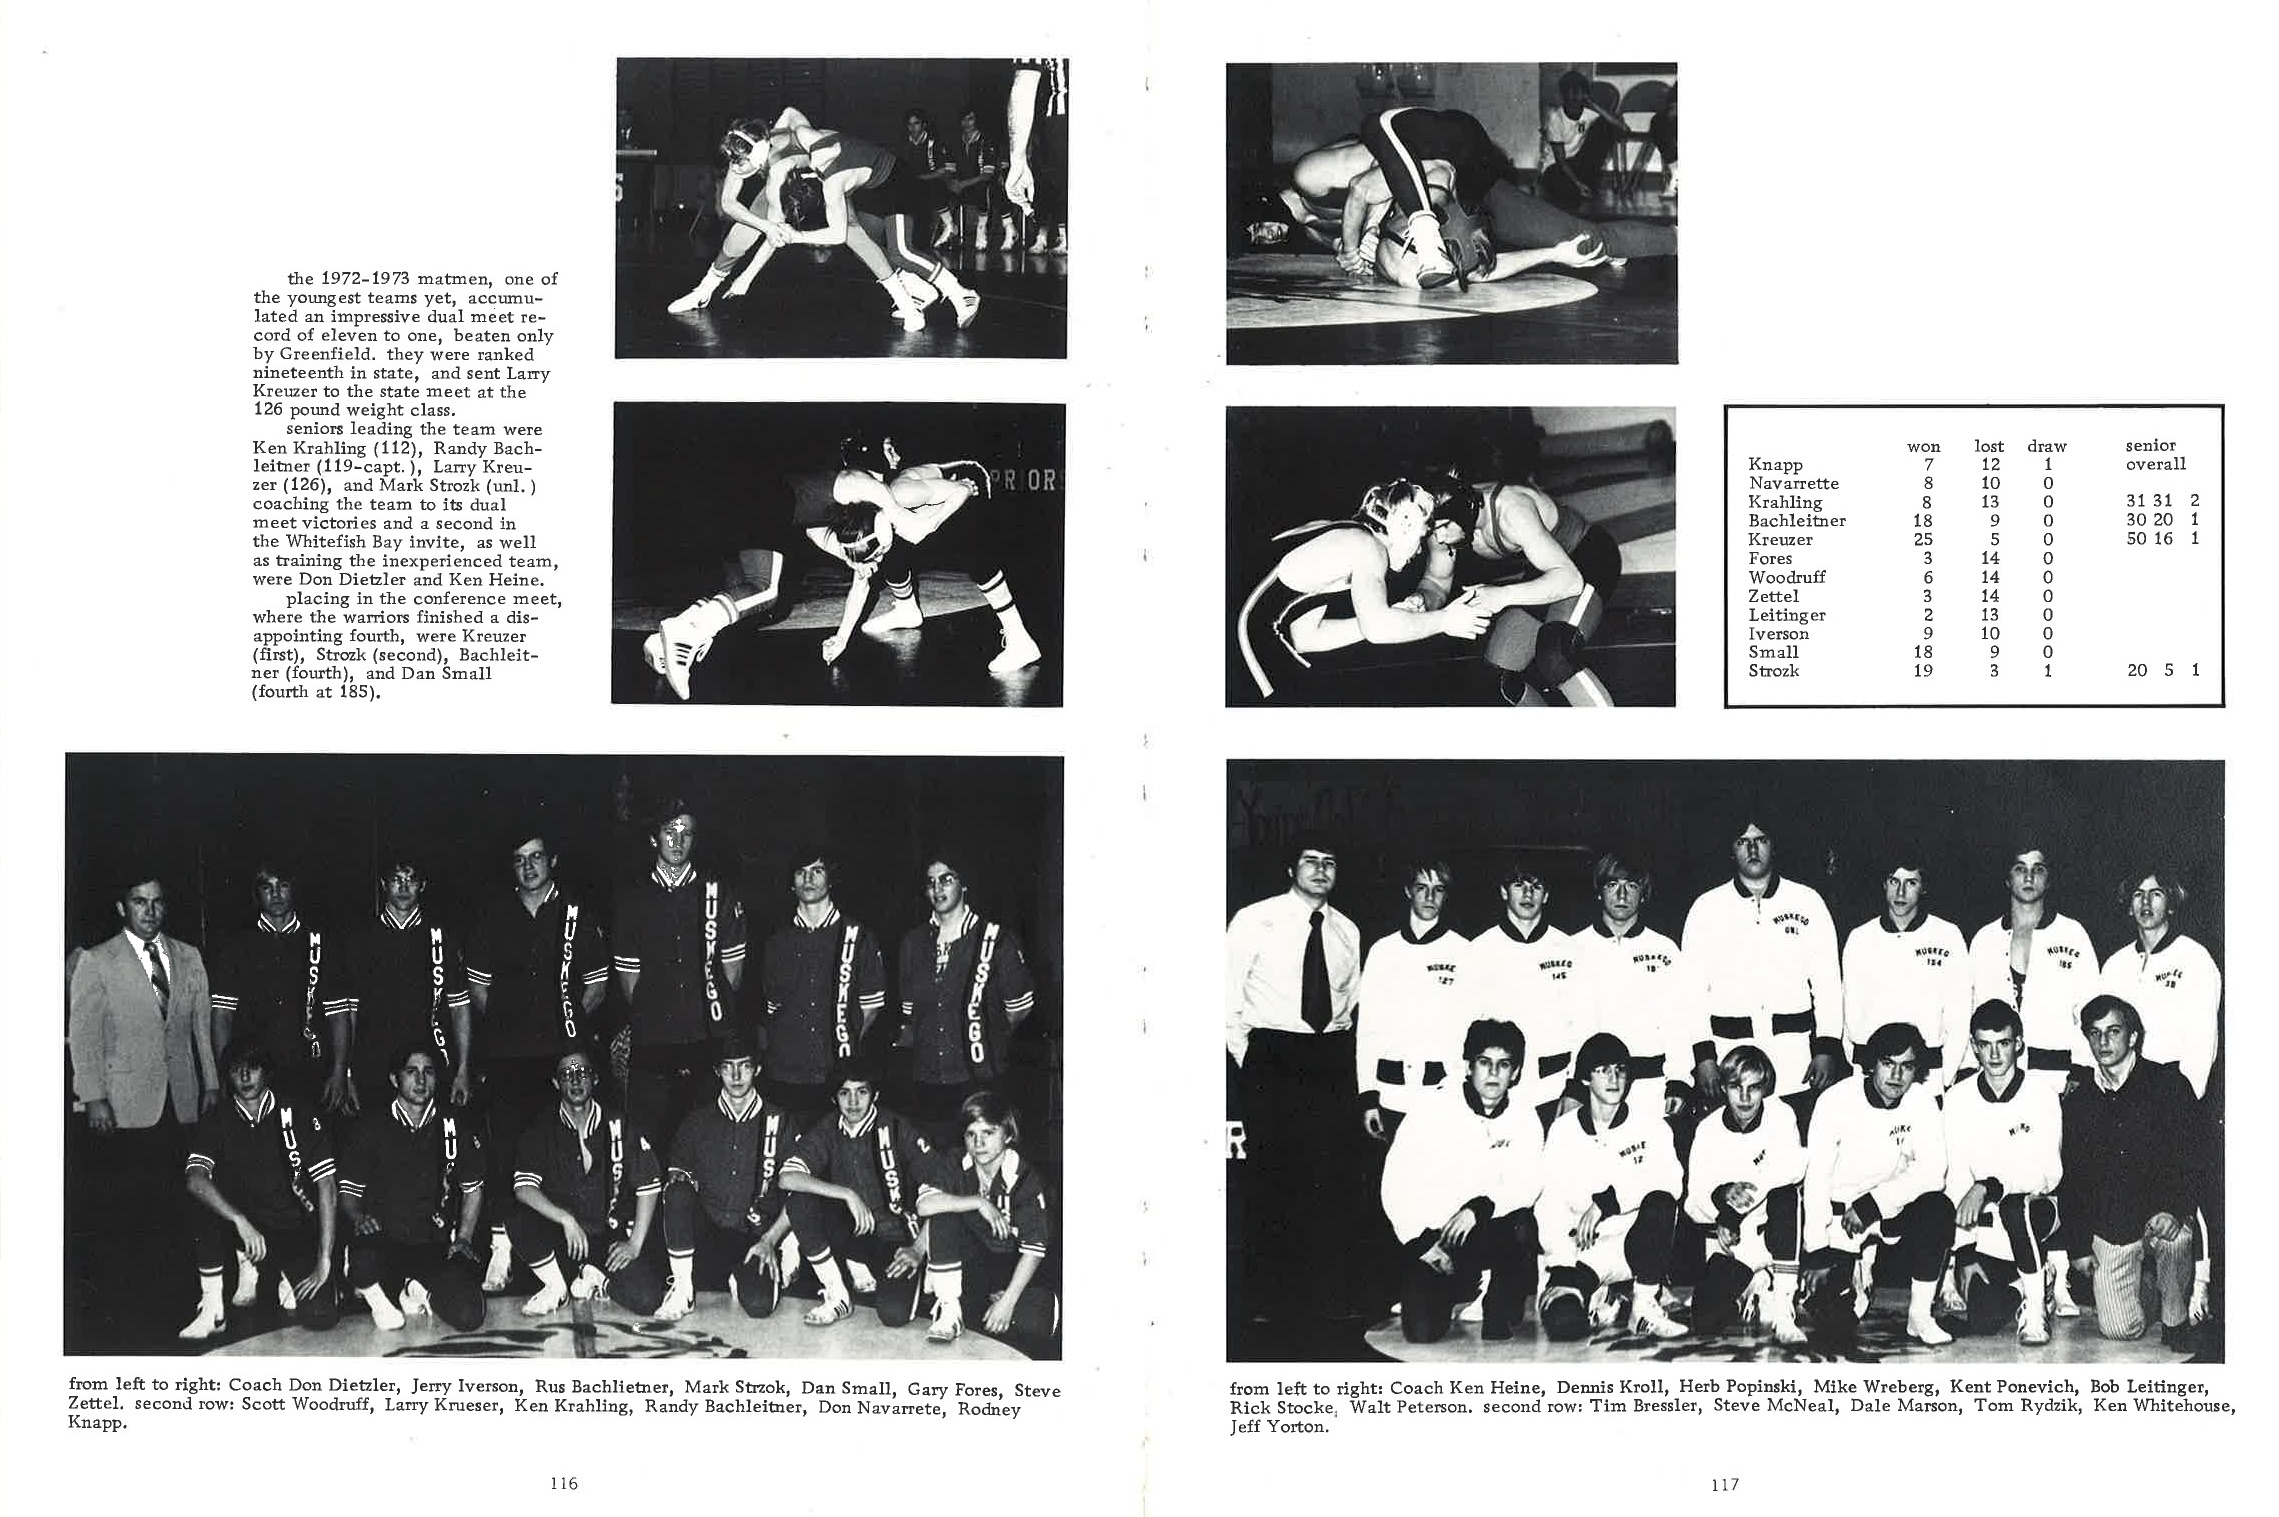 1973_Yearbook_116-117.jpg